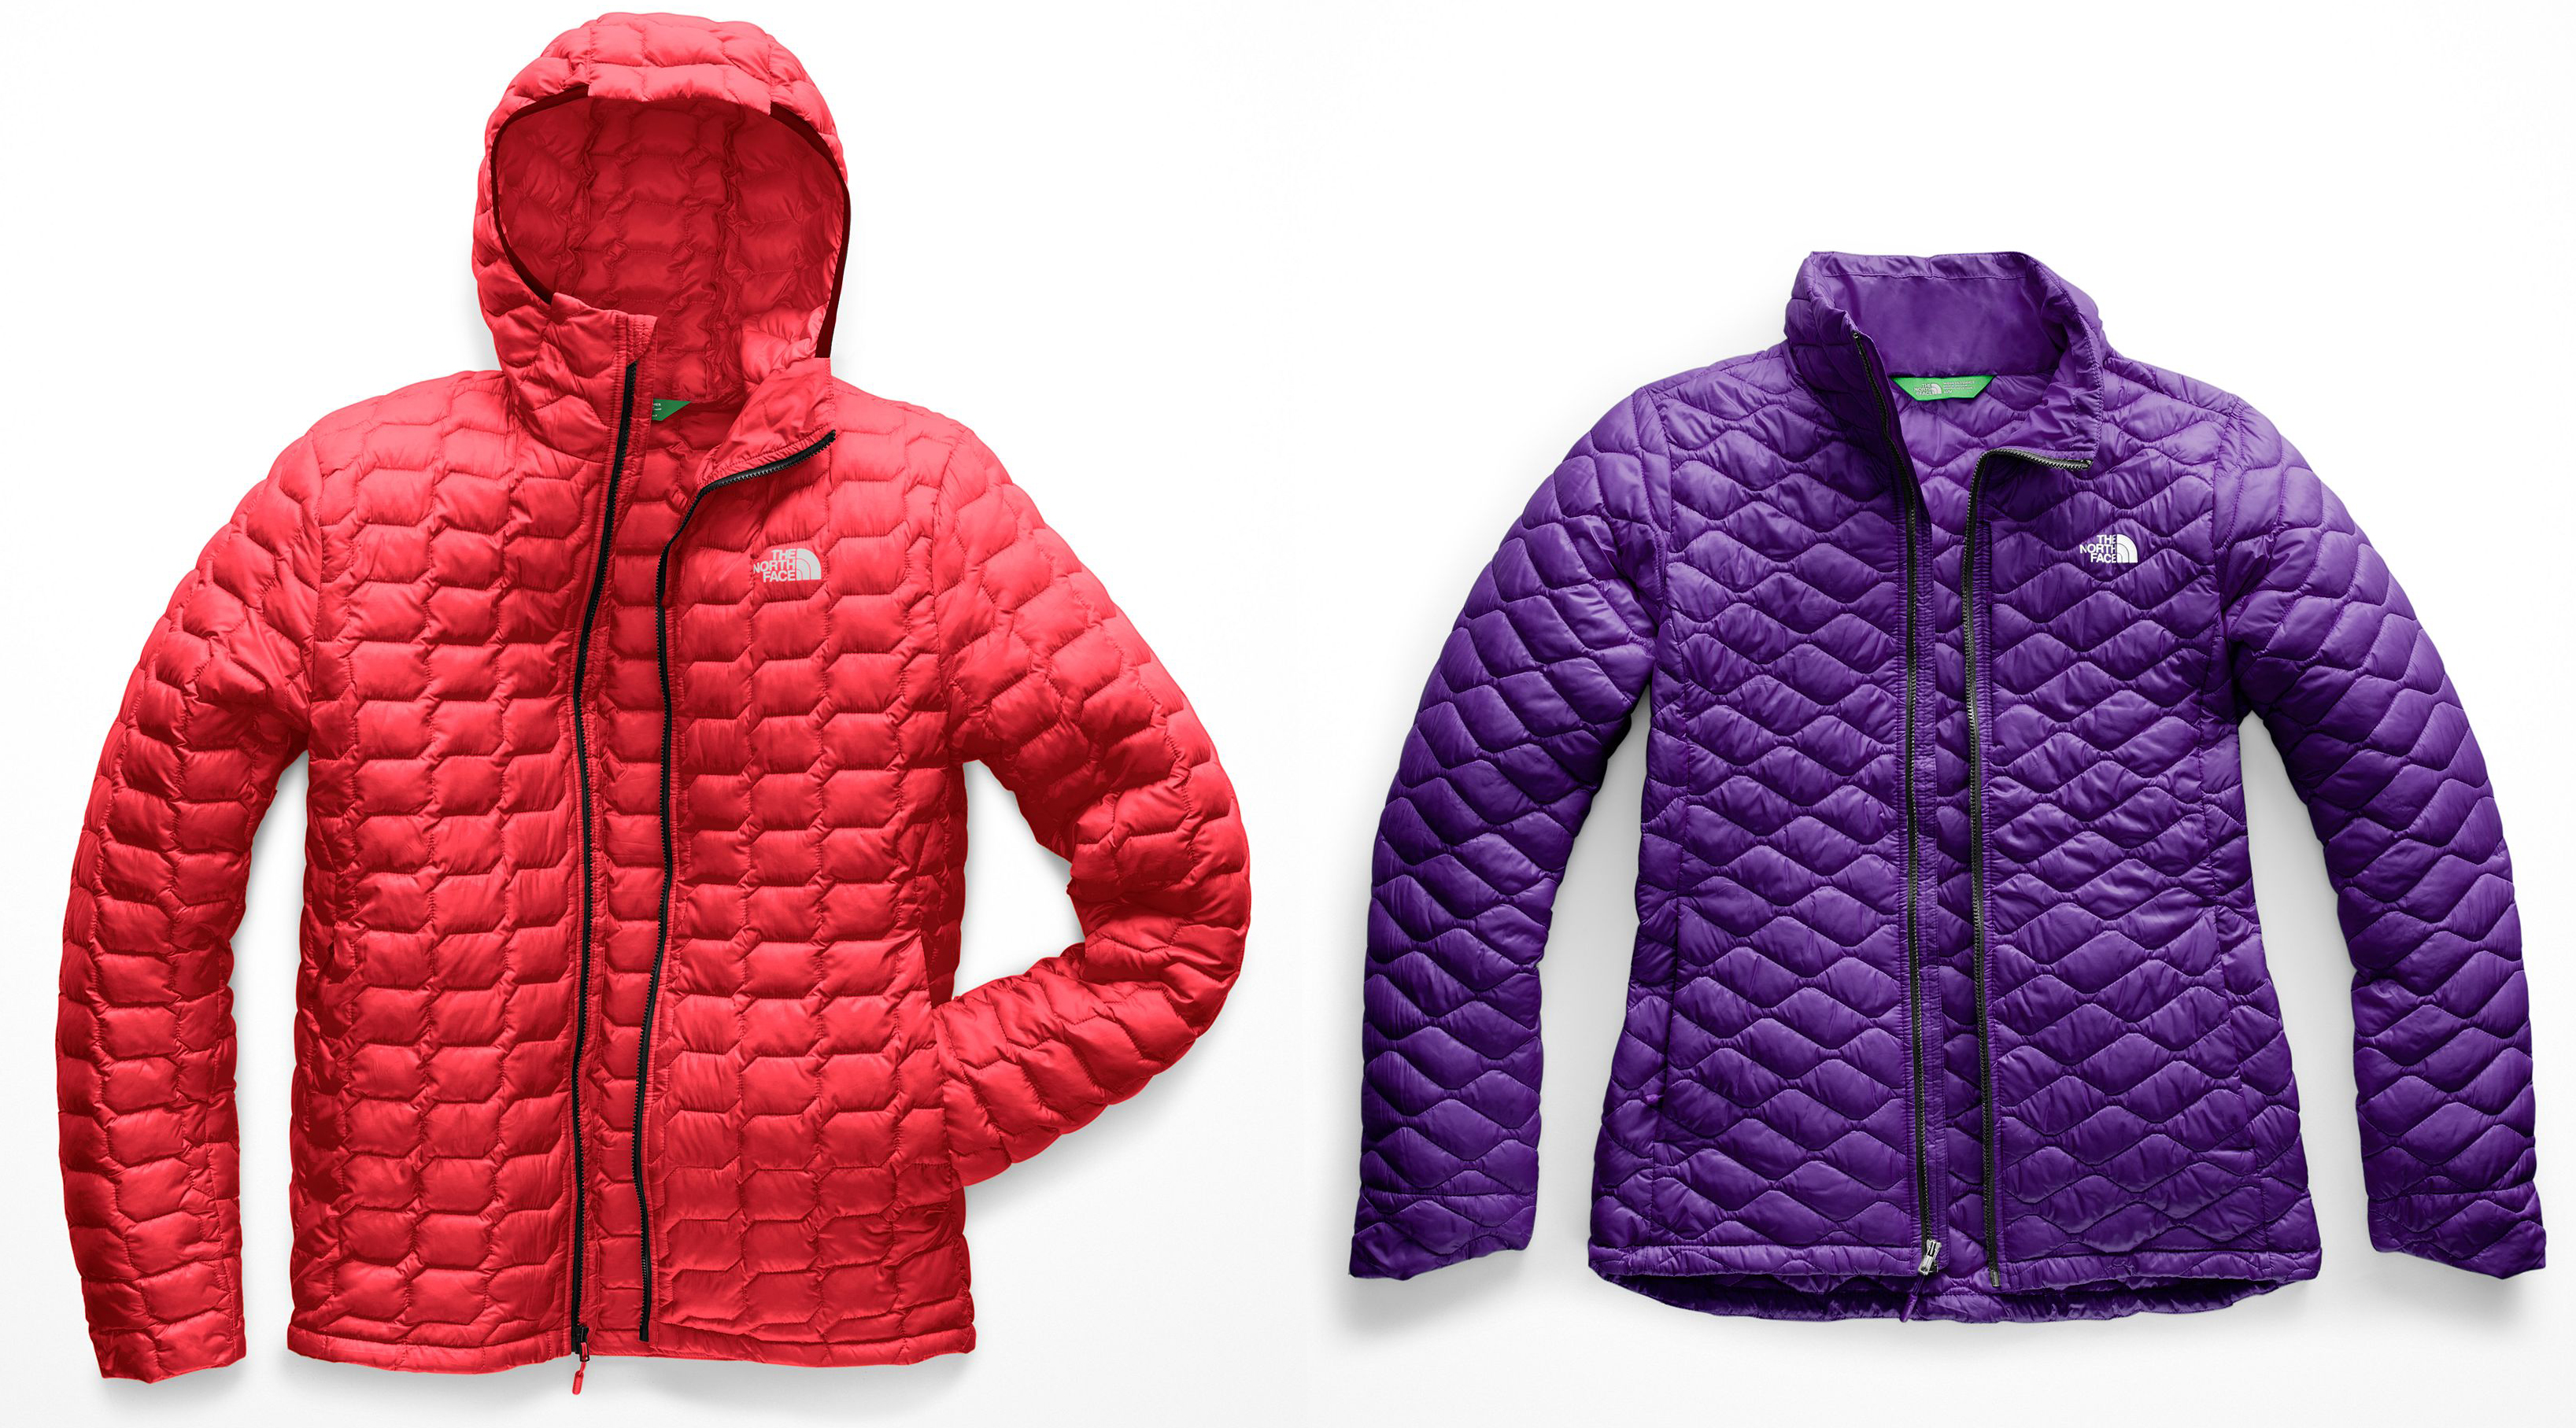 c890527b86a6b The North Face 'ThermoBall' Insulation Now Recycled | GearJunkie